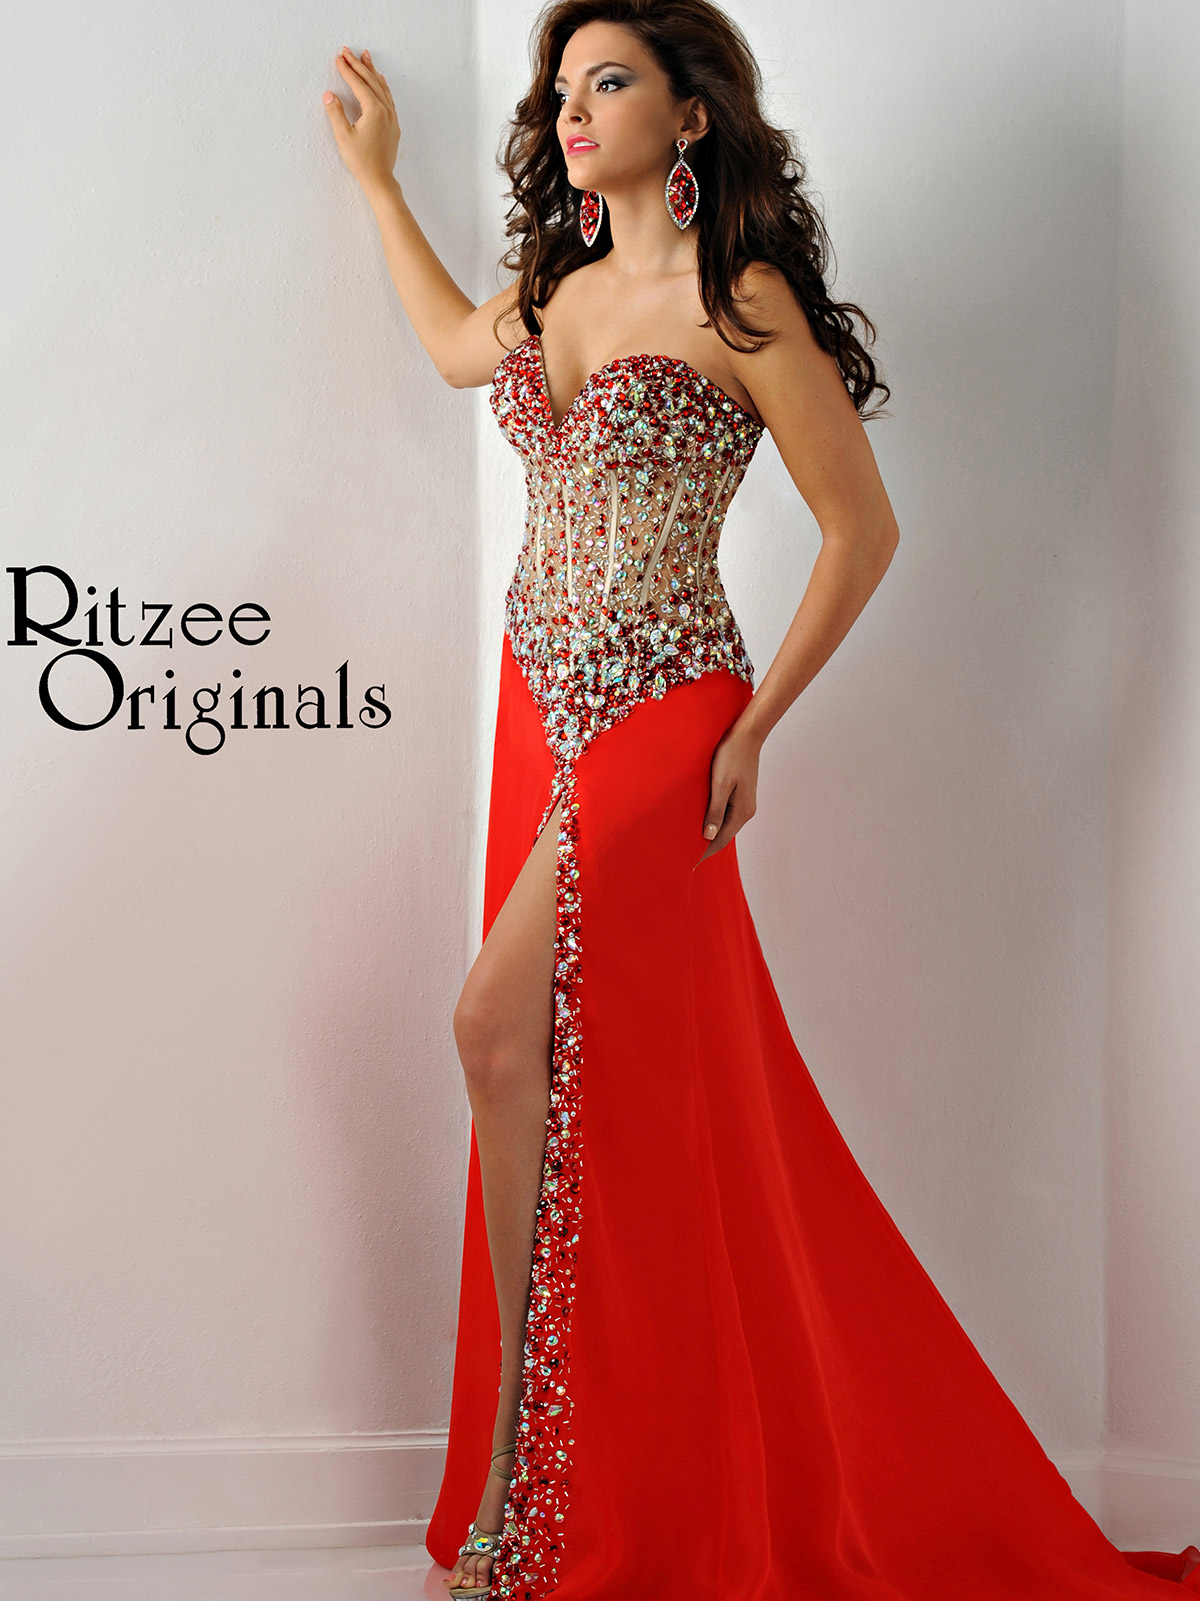 Find great deals on eBay for ritzee girls pageant dress. Shop with confidence.